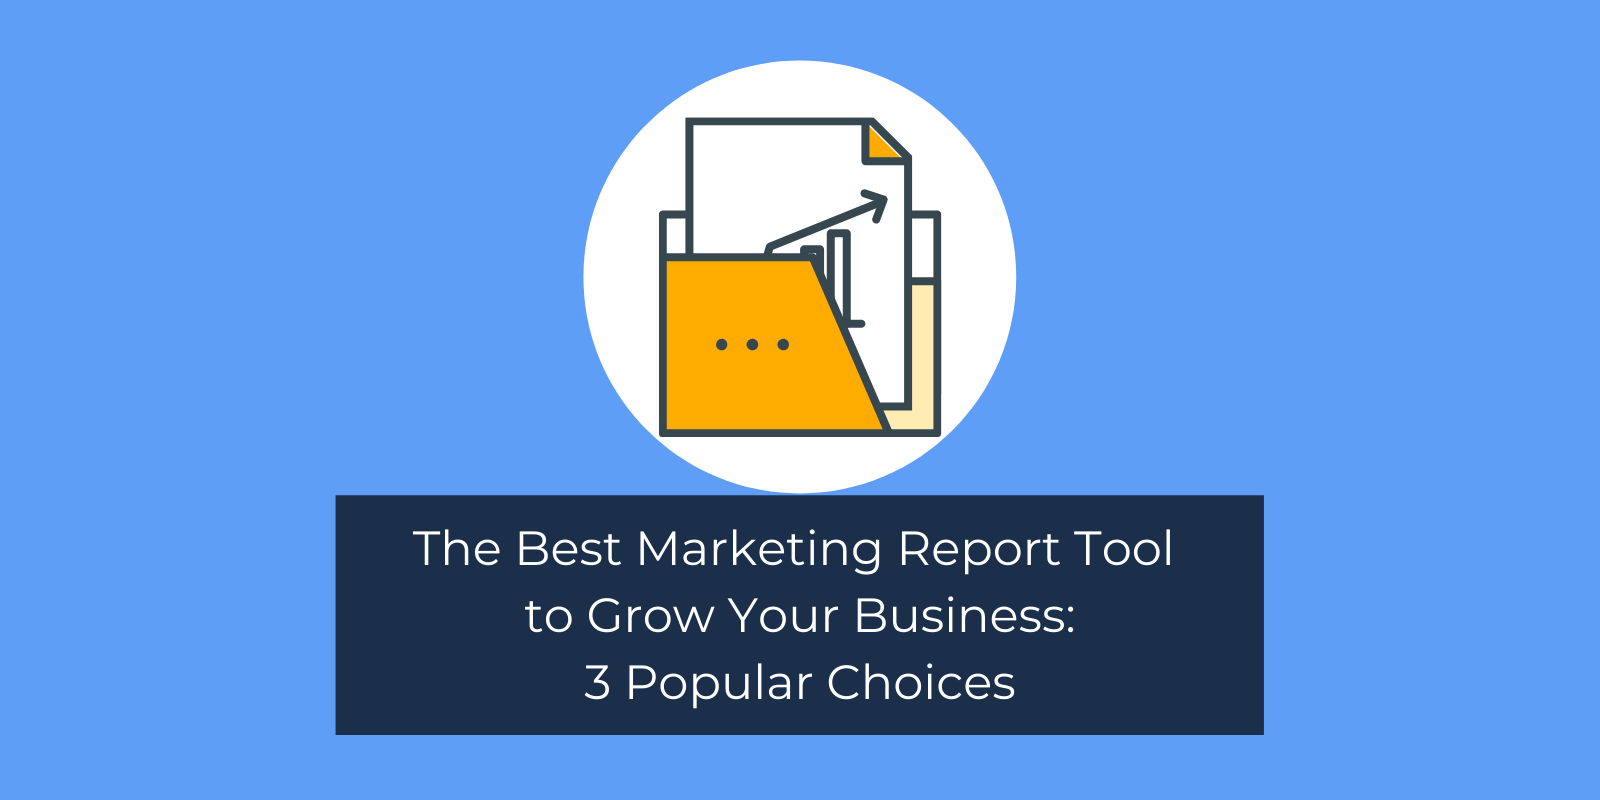 The Best Marketing Report Tool to Grow Your Business: 3 Popular Choices